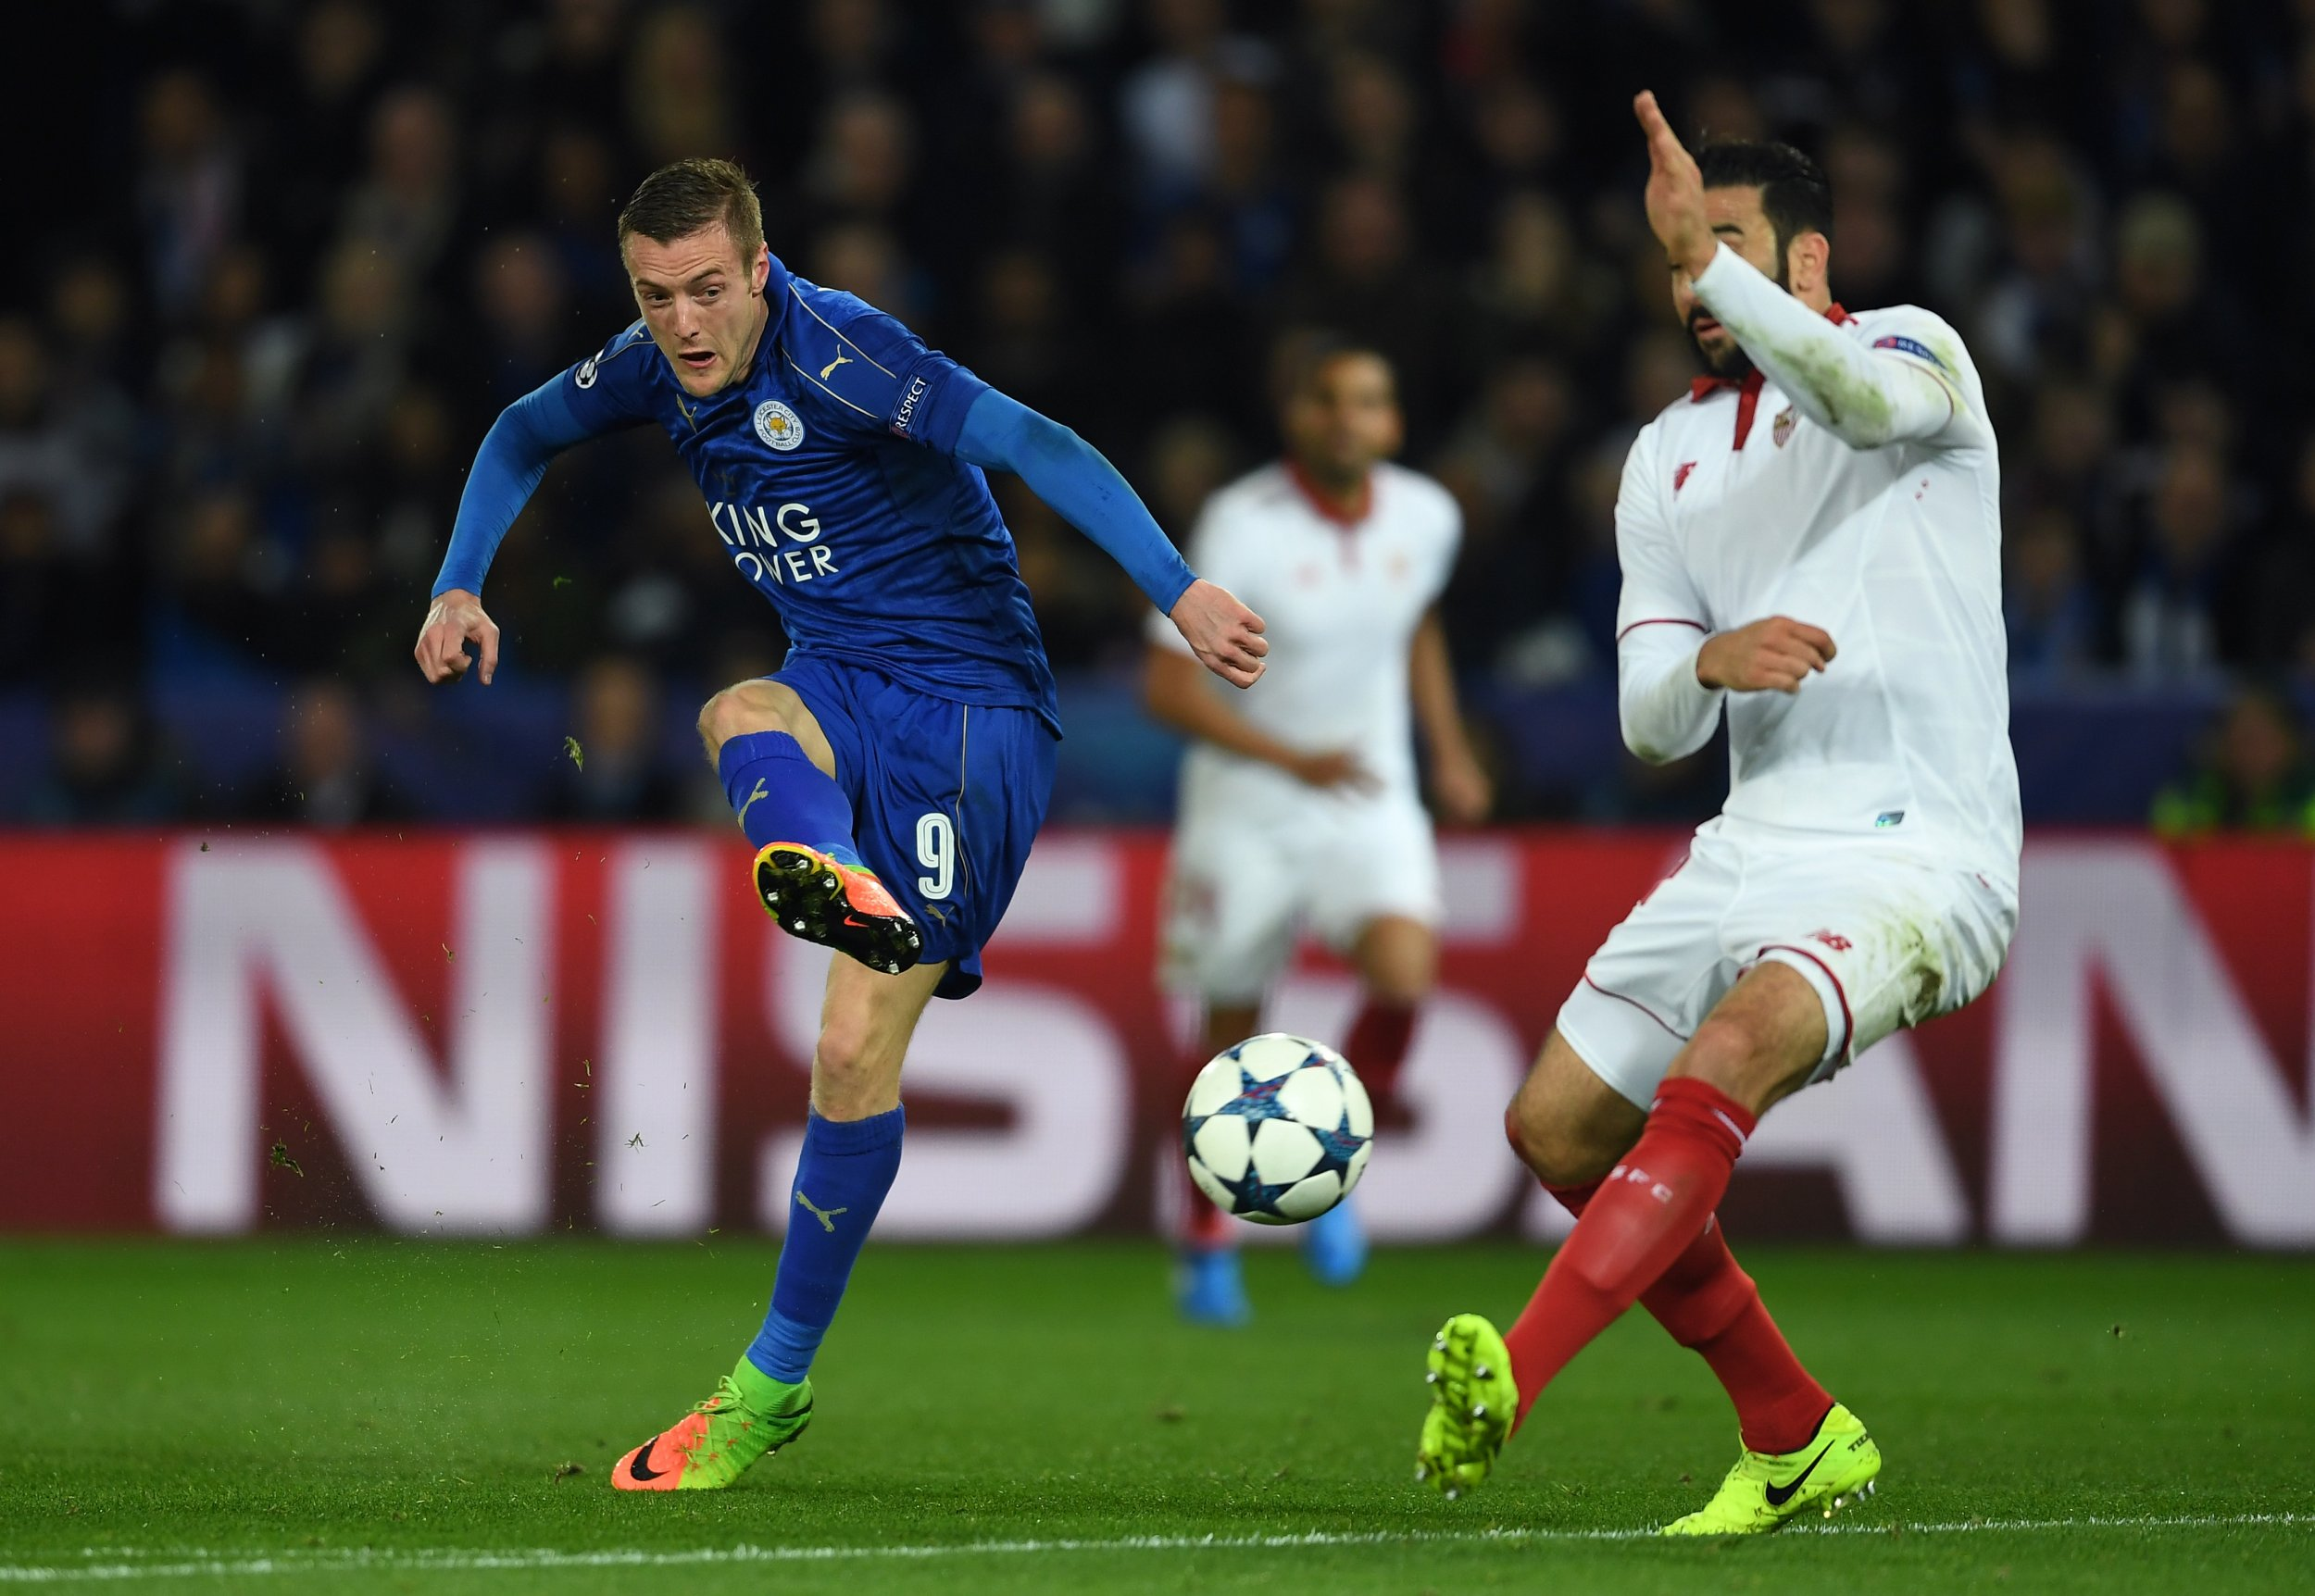 Leicester City striker Jamie Vardy at the King Power Stadium, Leicester, March 14.